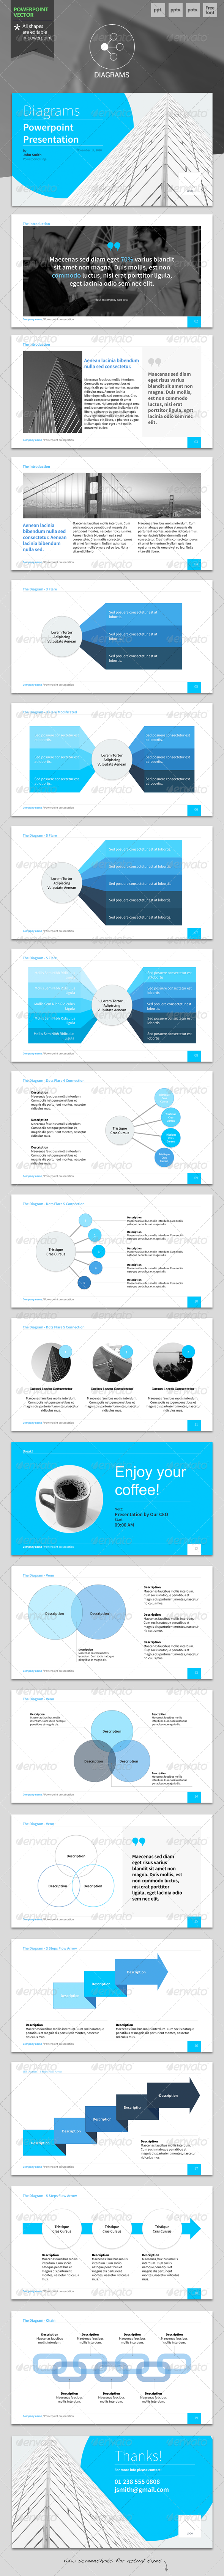 Diagrams - Powerpoint Template - PowerPoint Templates Presentation Templates